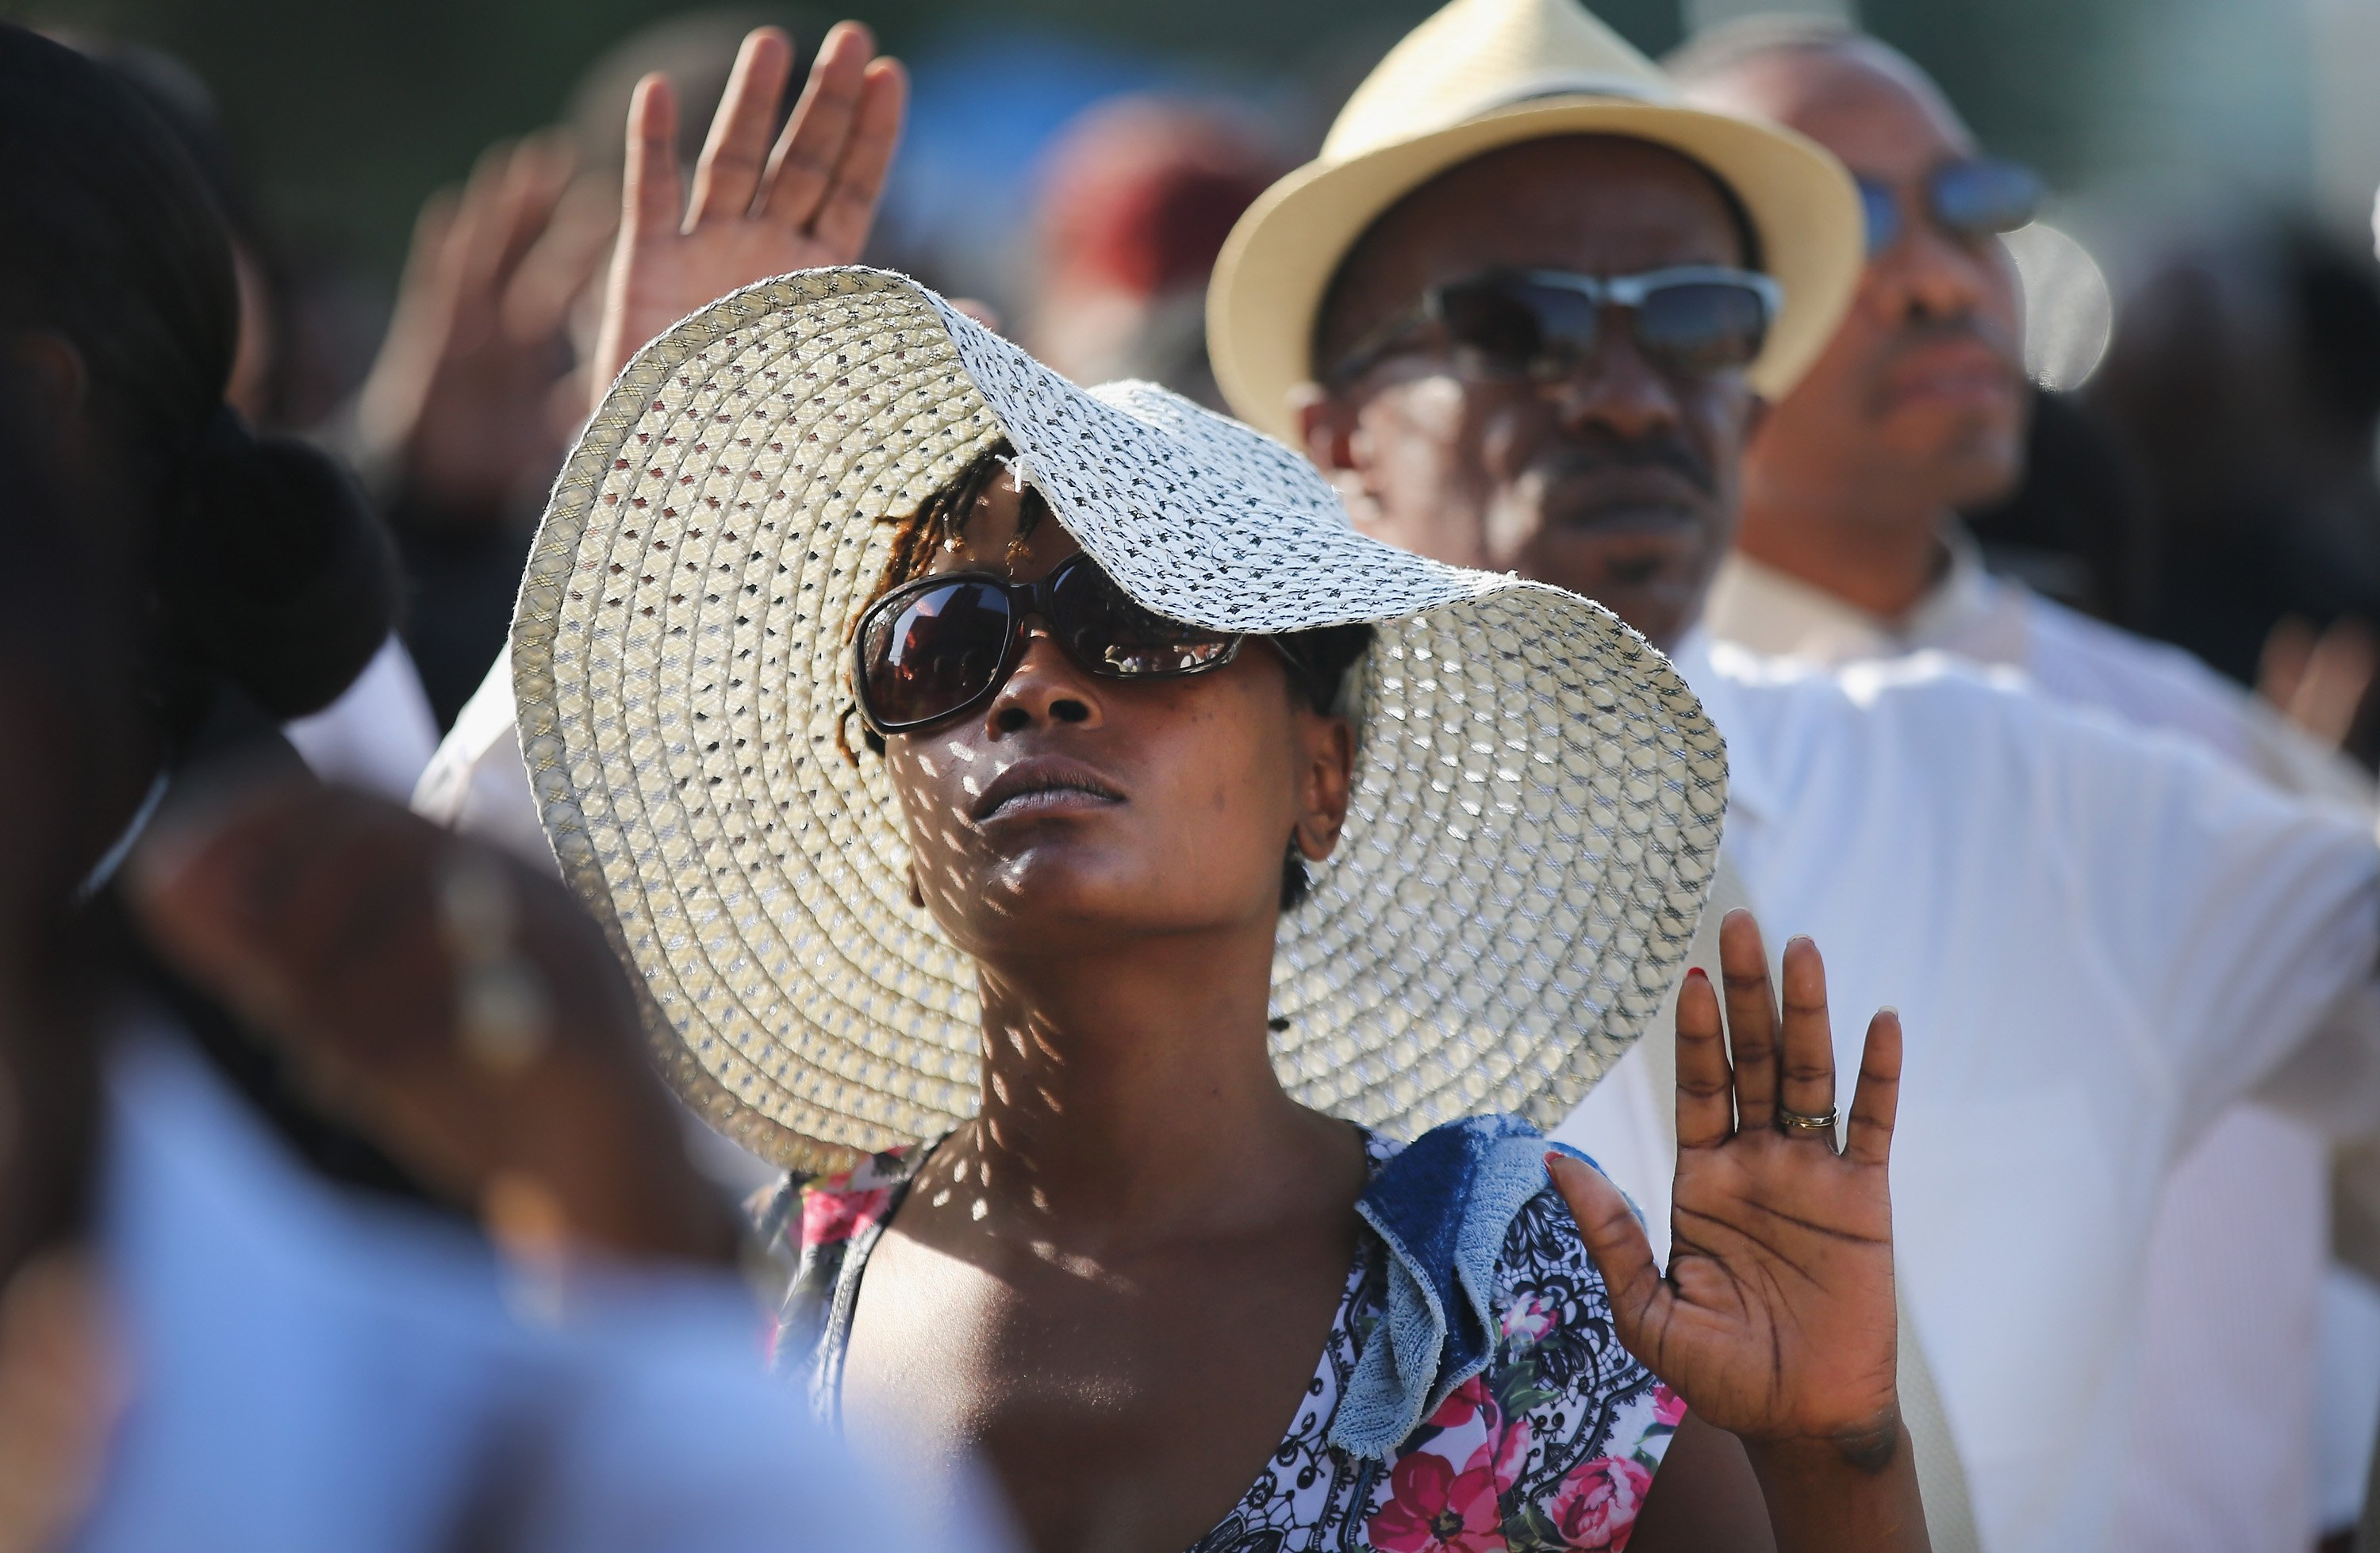 Guests raise their hands as they wait in line to enter the funeral of Michael Brown at the Friendly Temple Missionary Baptist Church in St. Louis on Aug. 25, 2014.